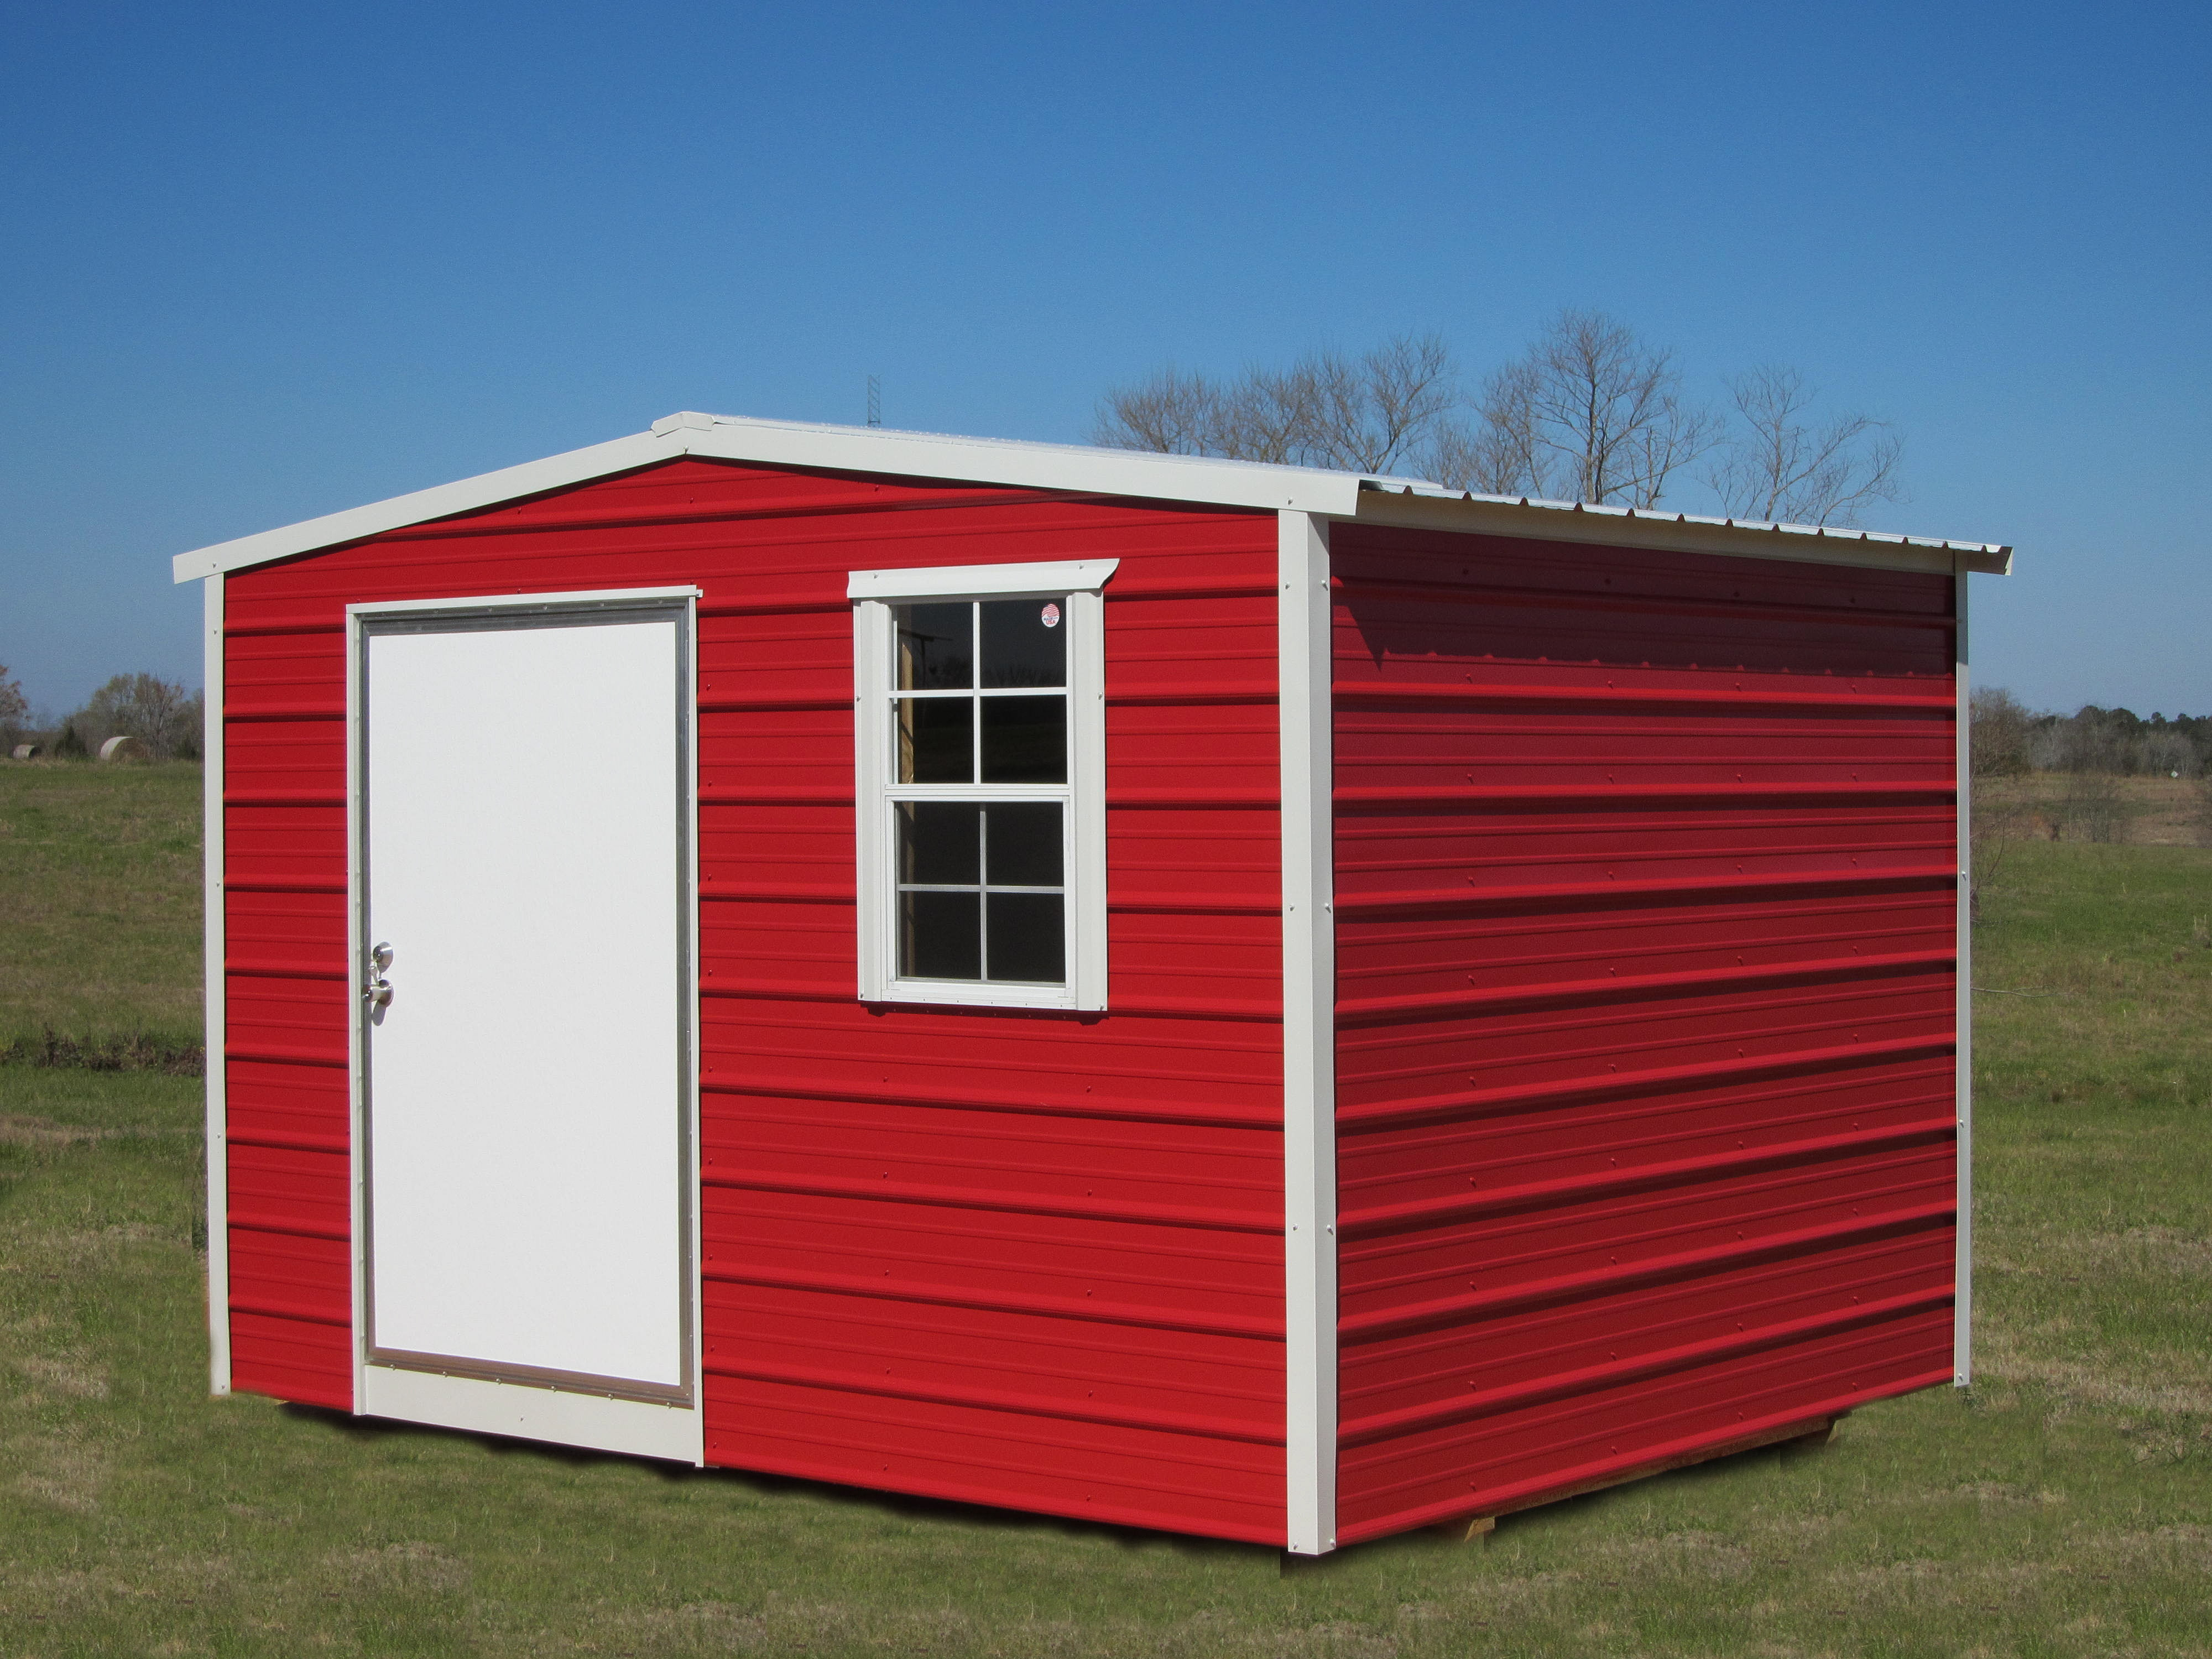 Portable buildings storage buildings storage sheds for Sheds storage buildings